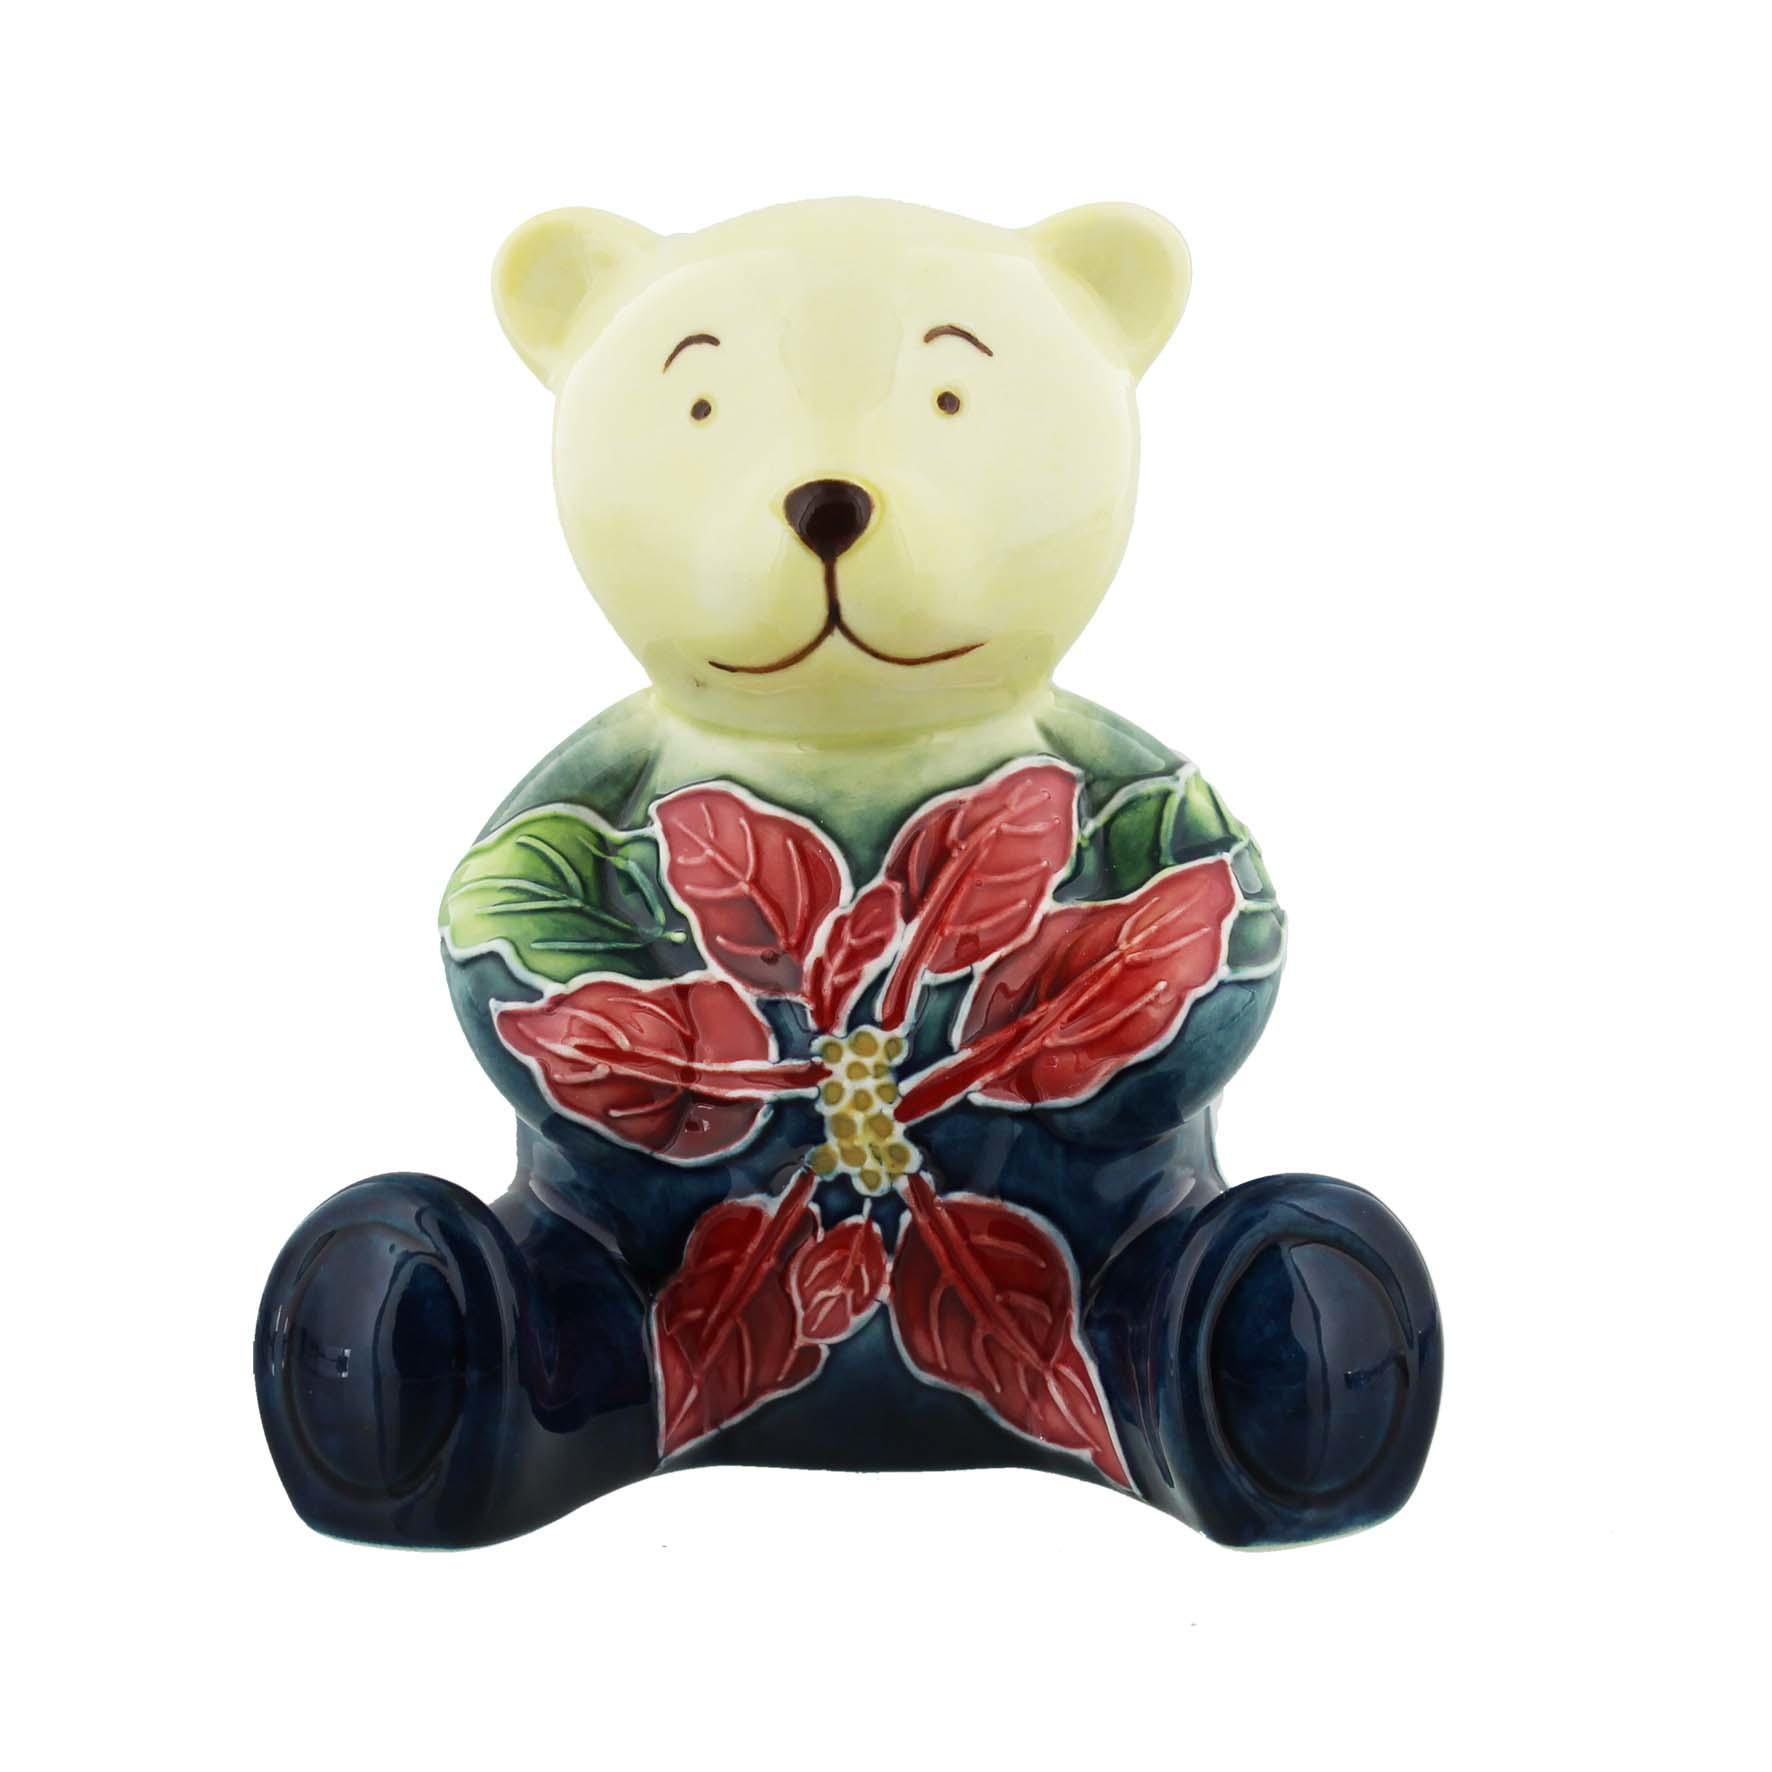 Old Tupton Ware Bear with Poinsettia Design